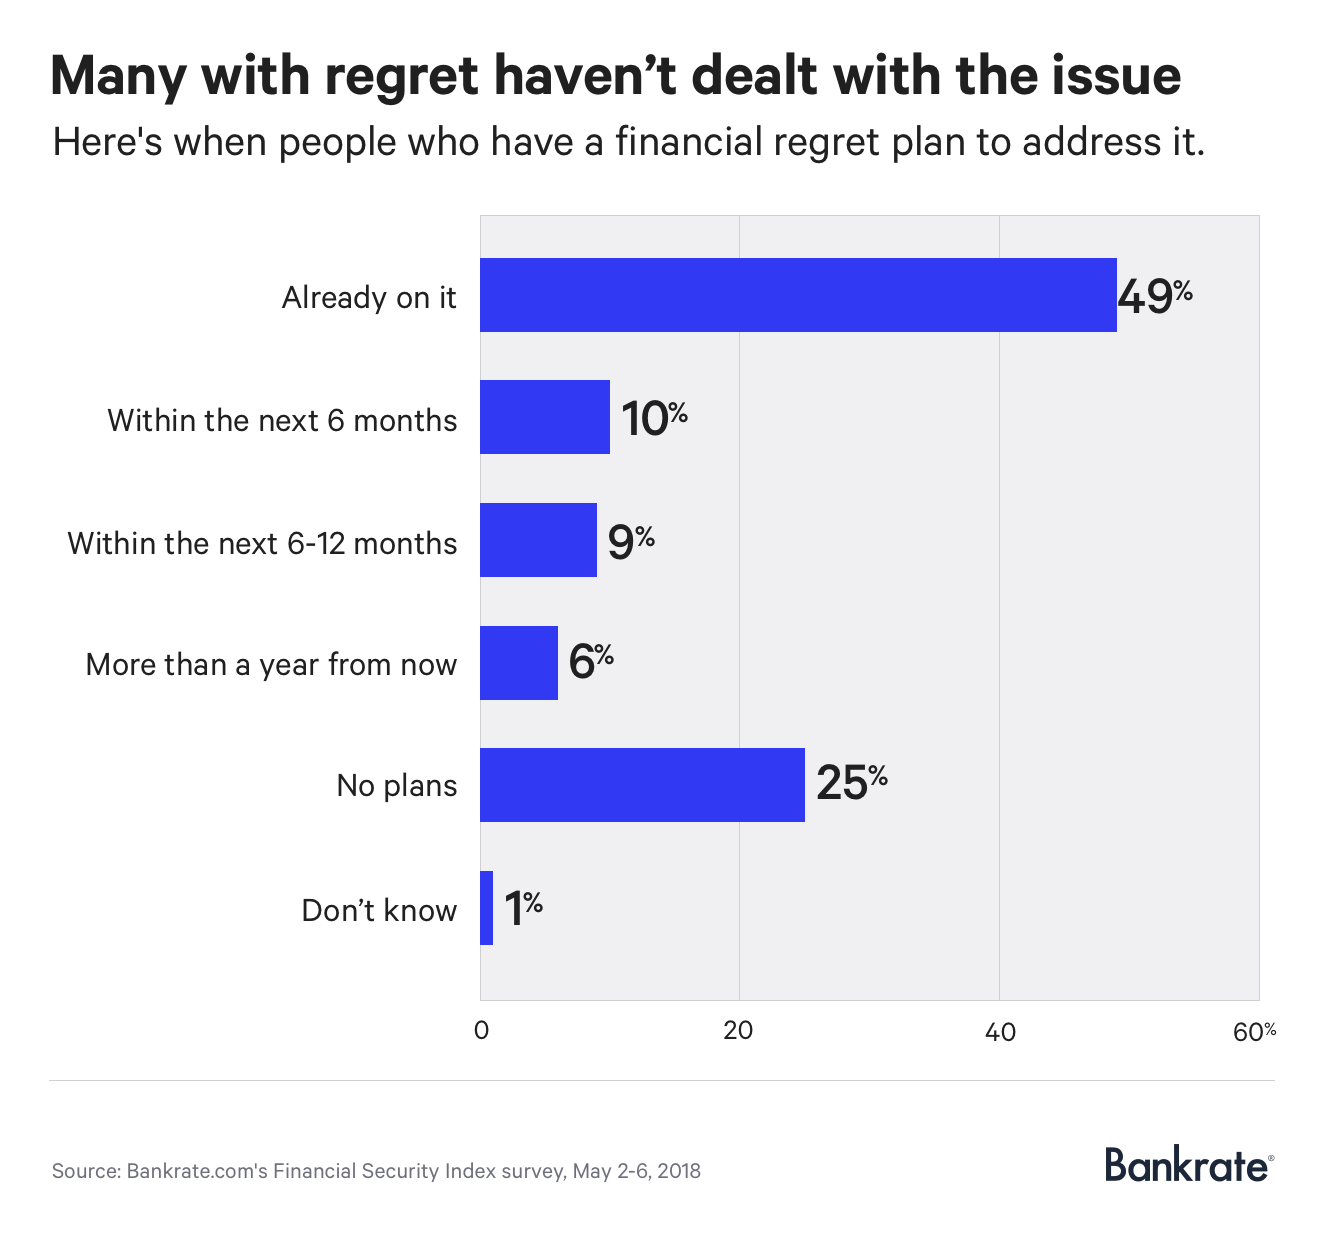 Chart: Many with financial regret haven't dealt with the issue